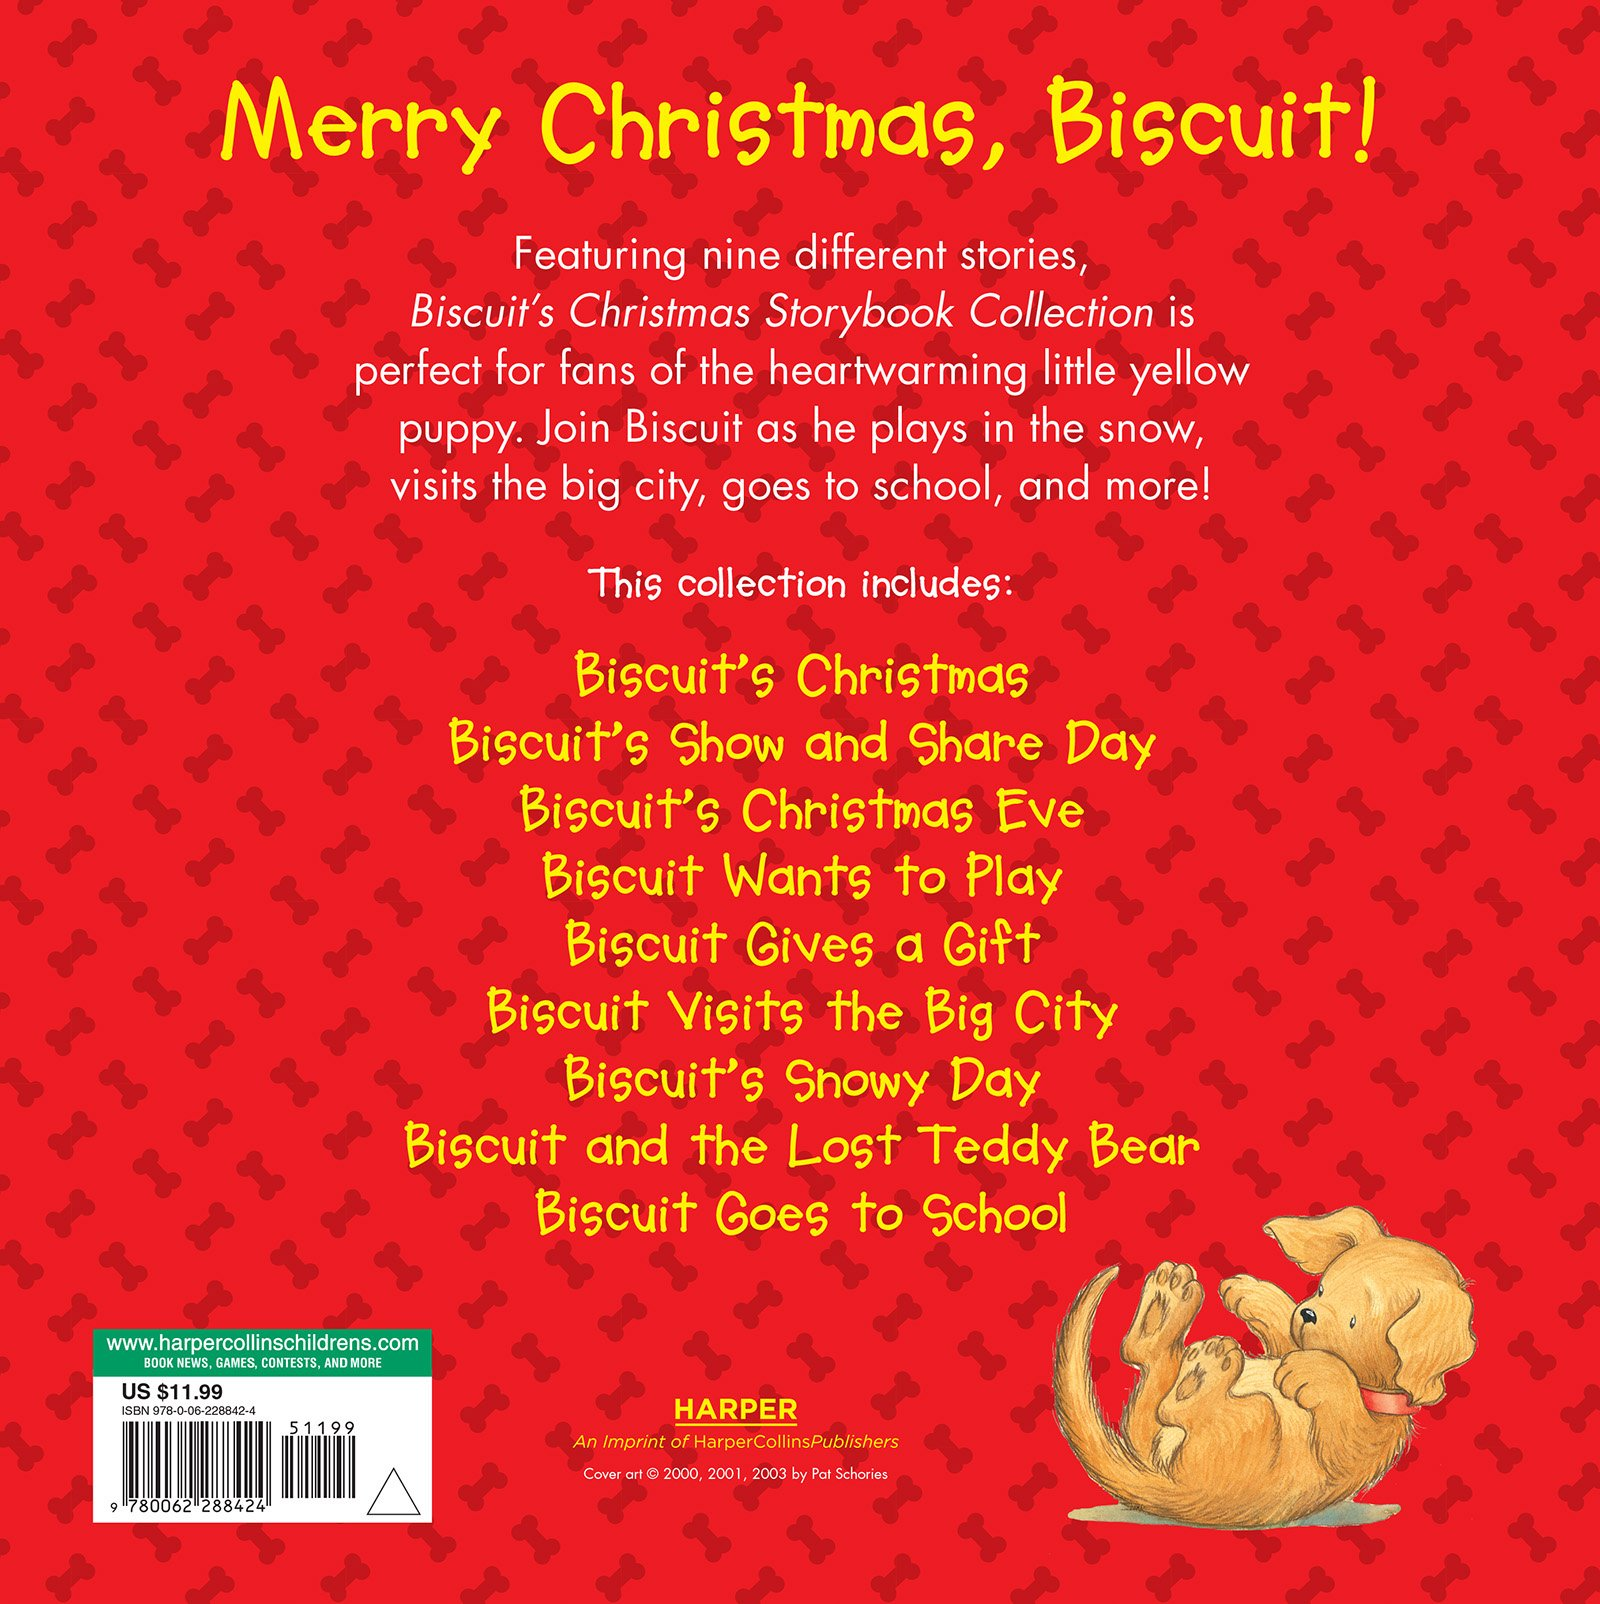 Biscuit's Christmas Storybook Collection by HarperFestival